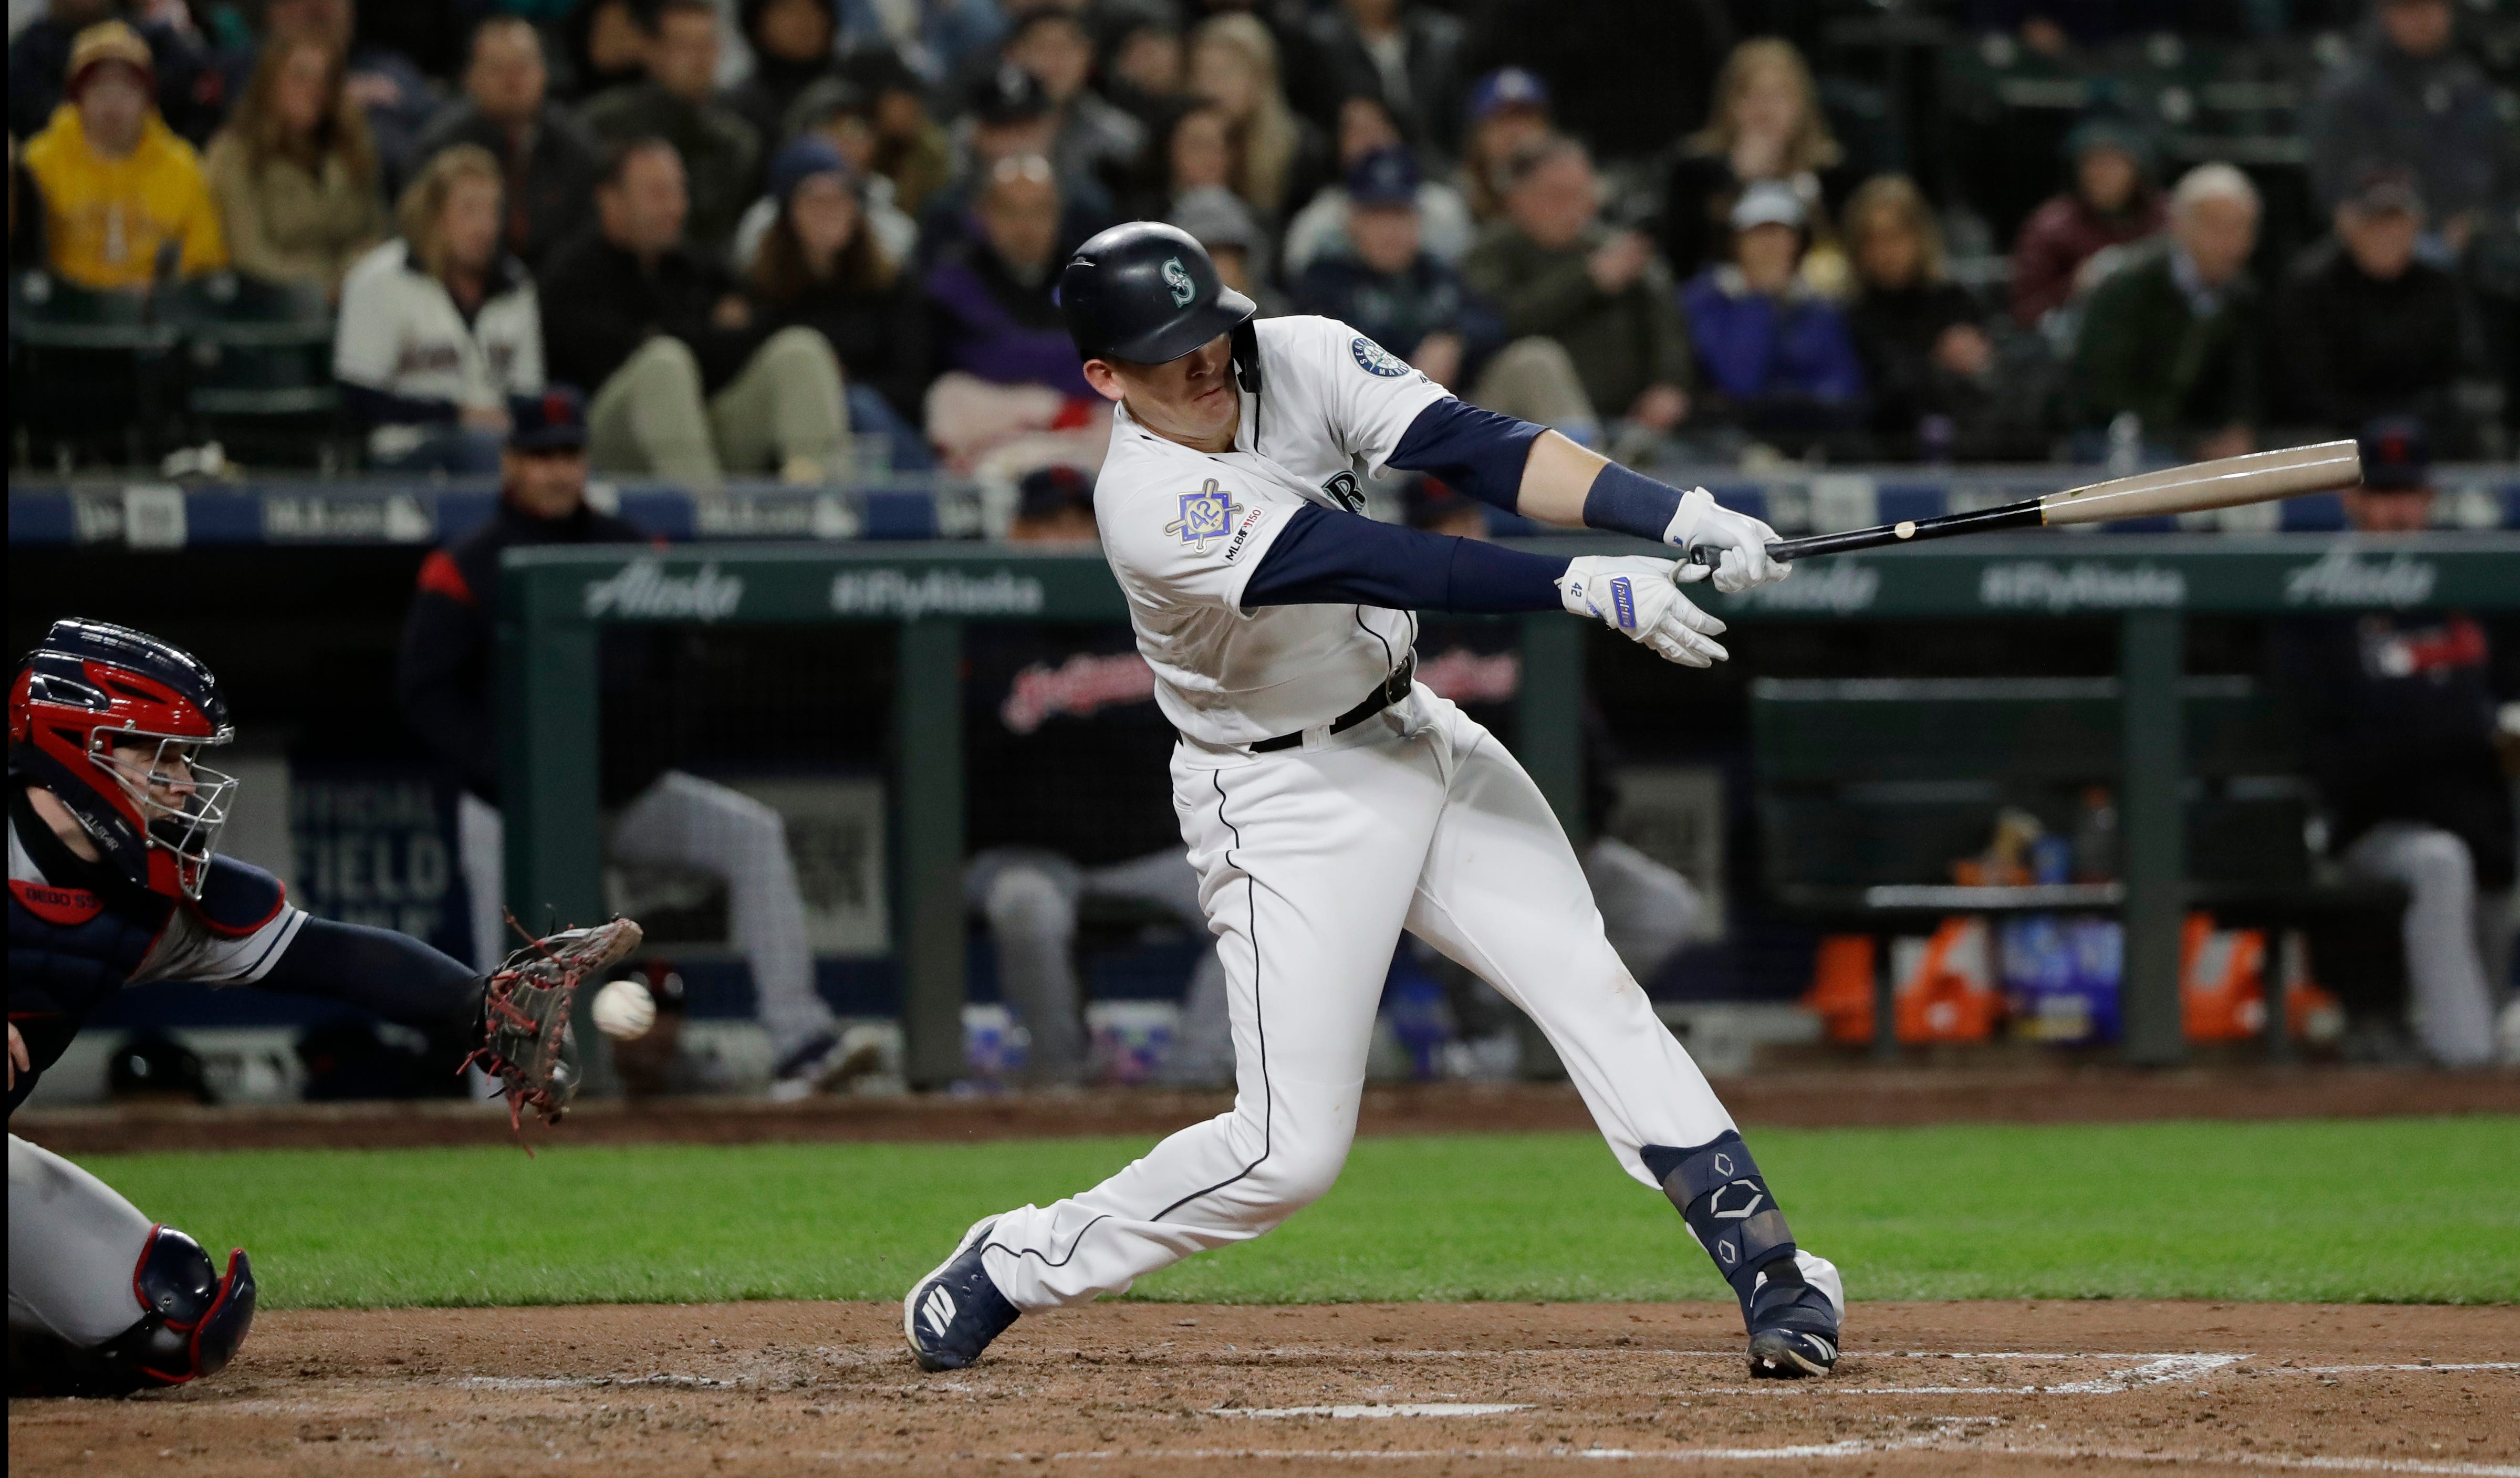 Bauer, Ramirez help Indians hold off Mariners for 6-4 win